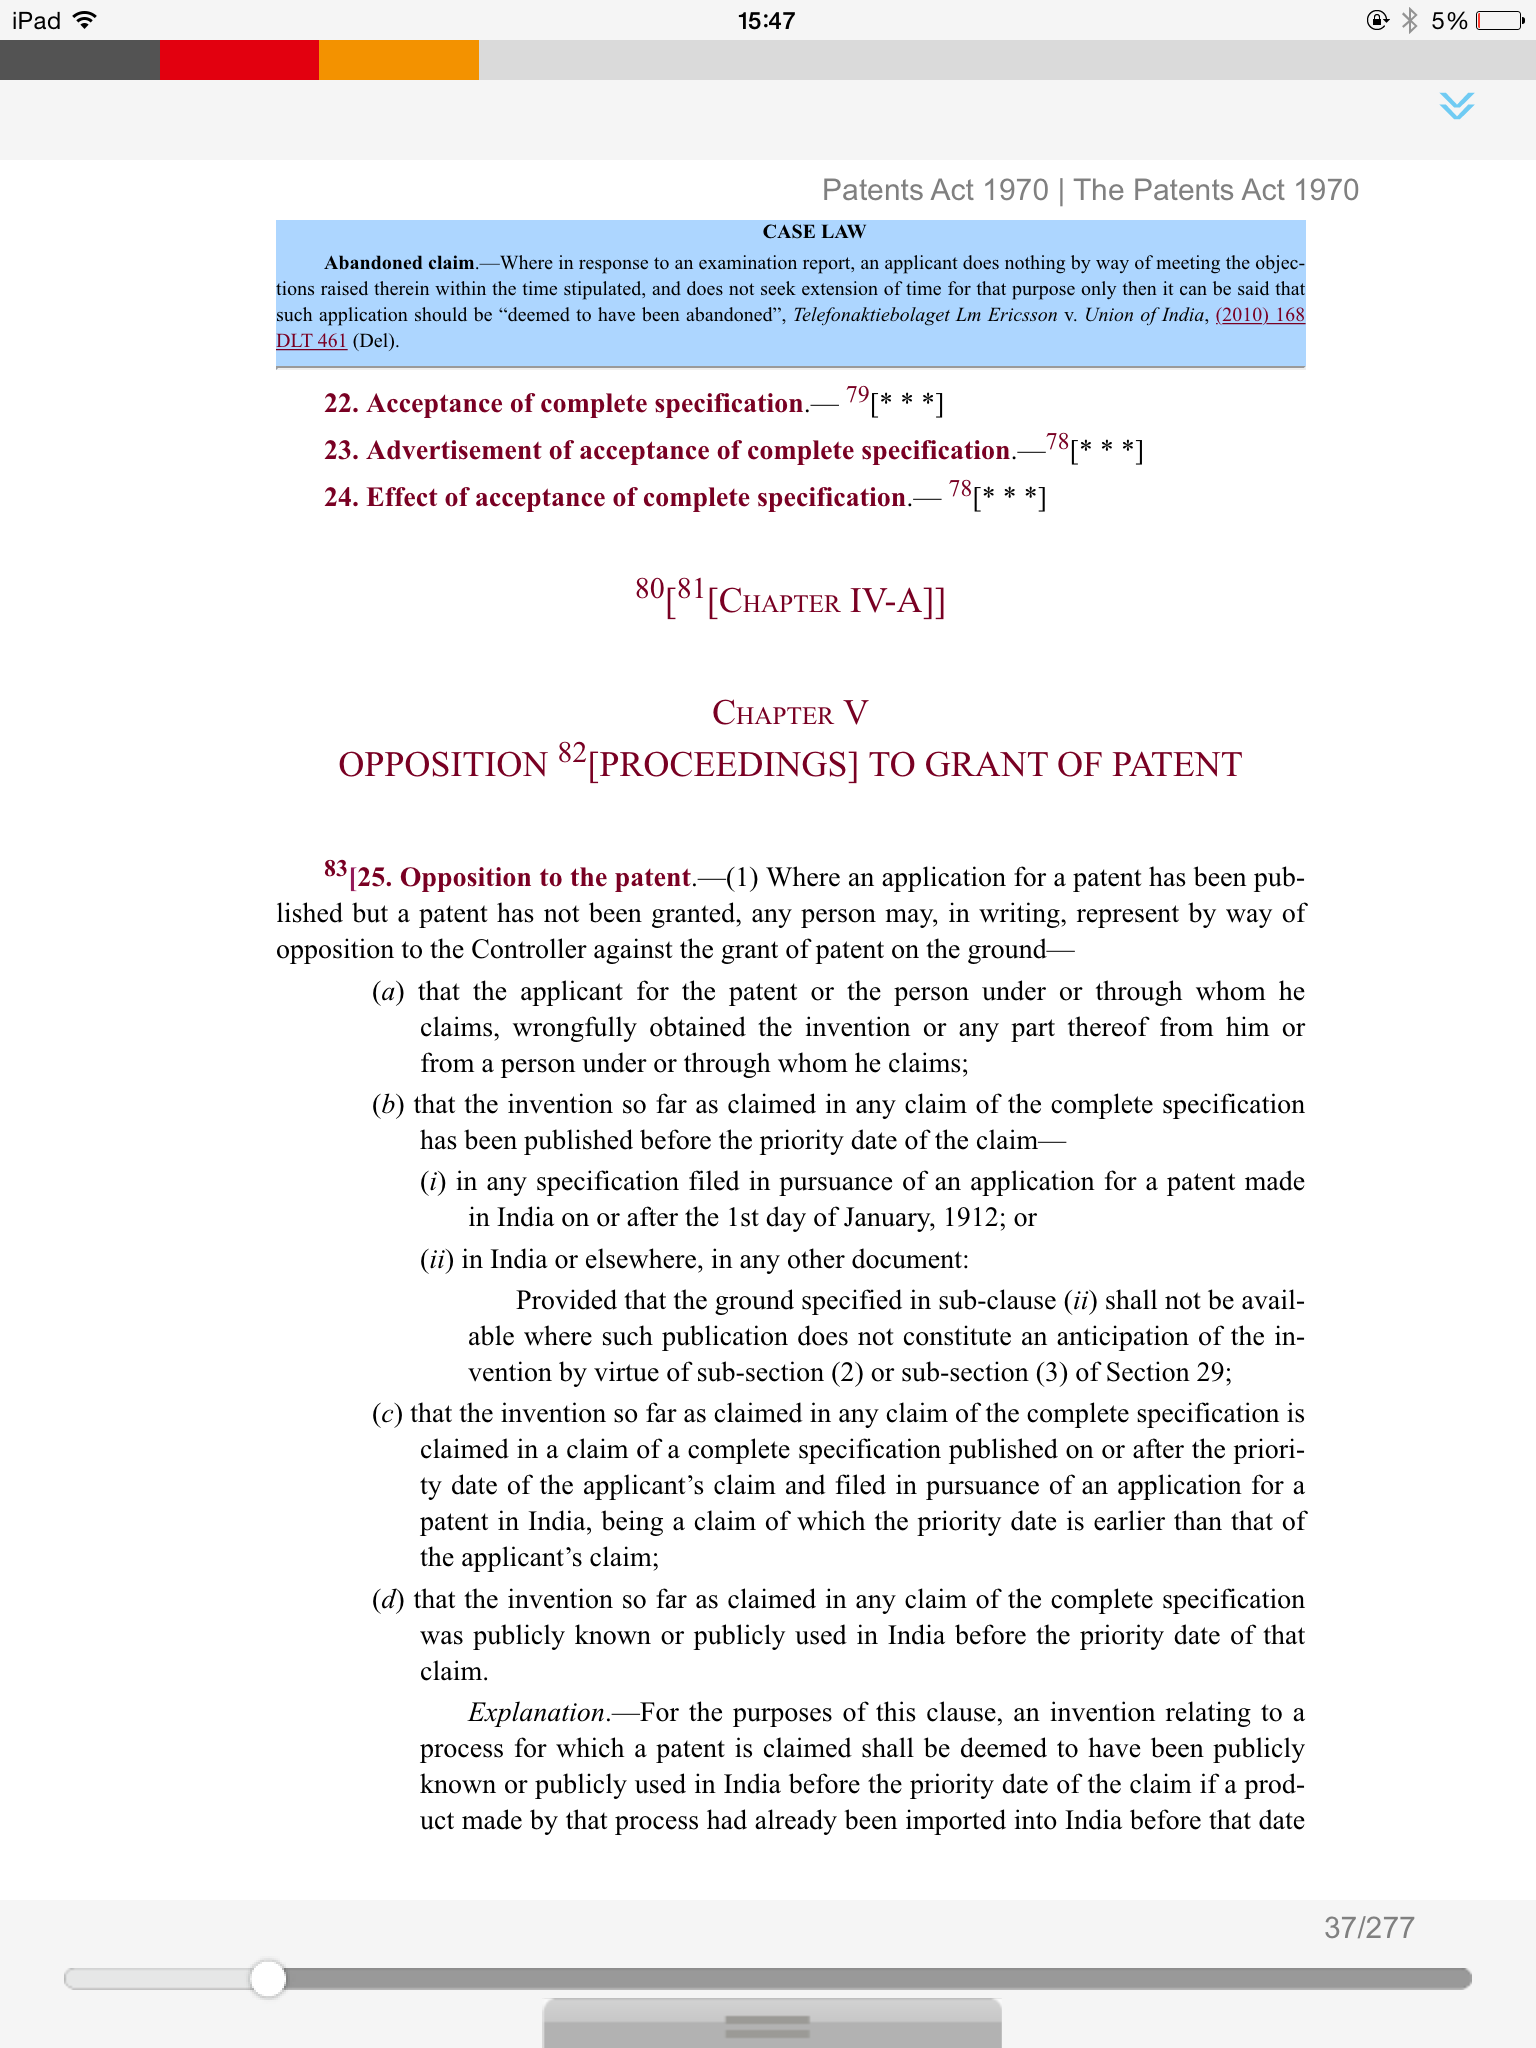 Patents Act, 1970